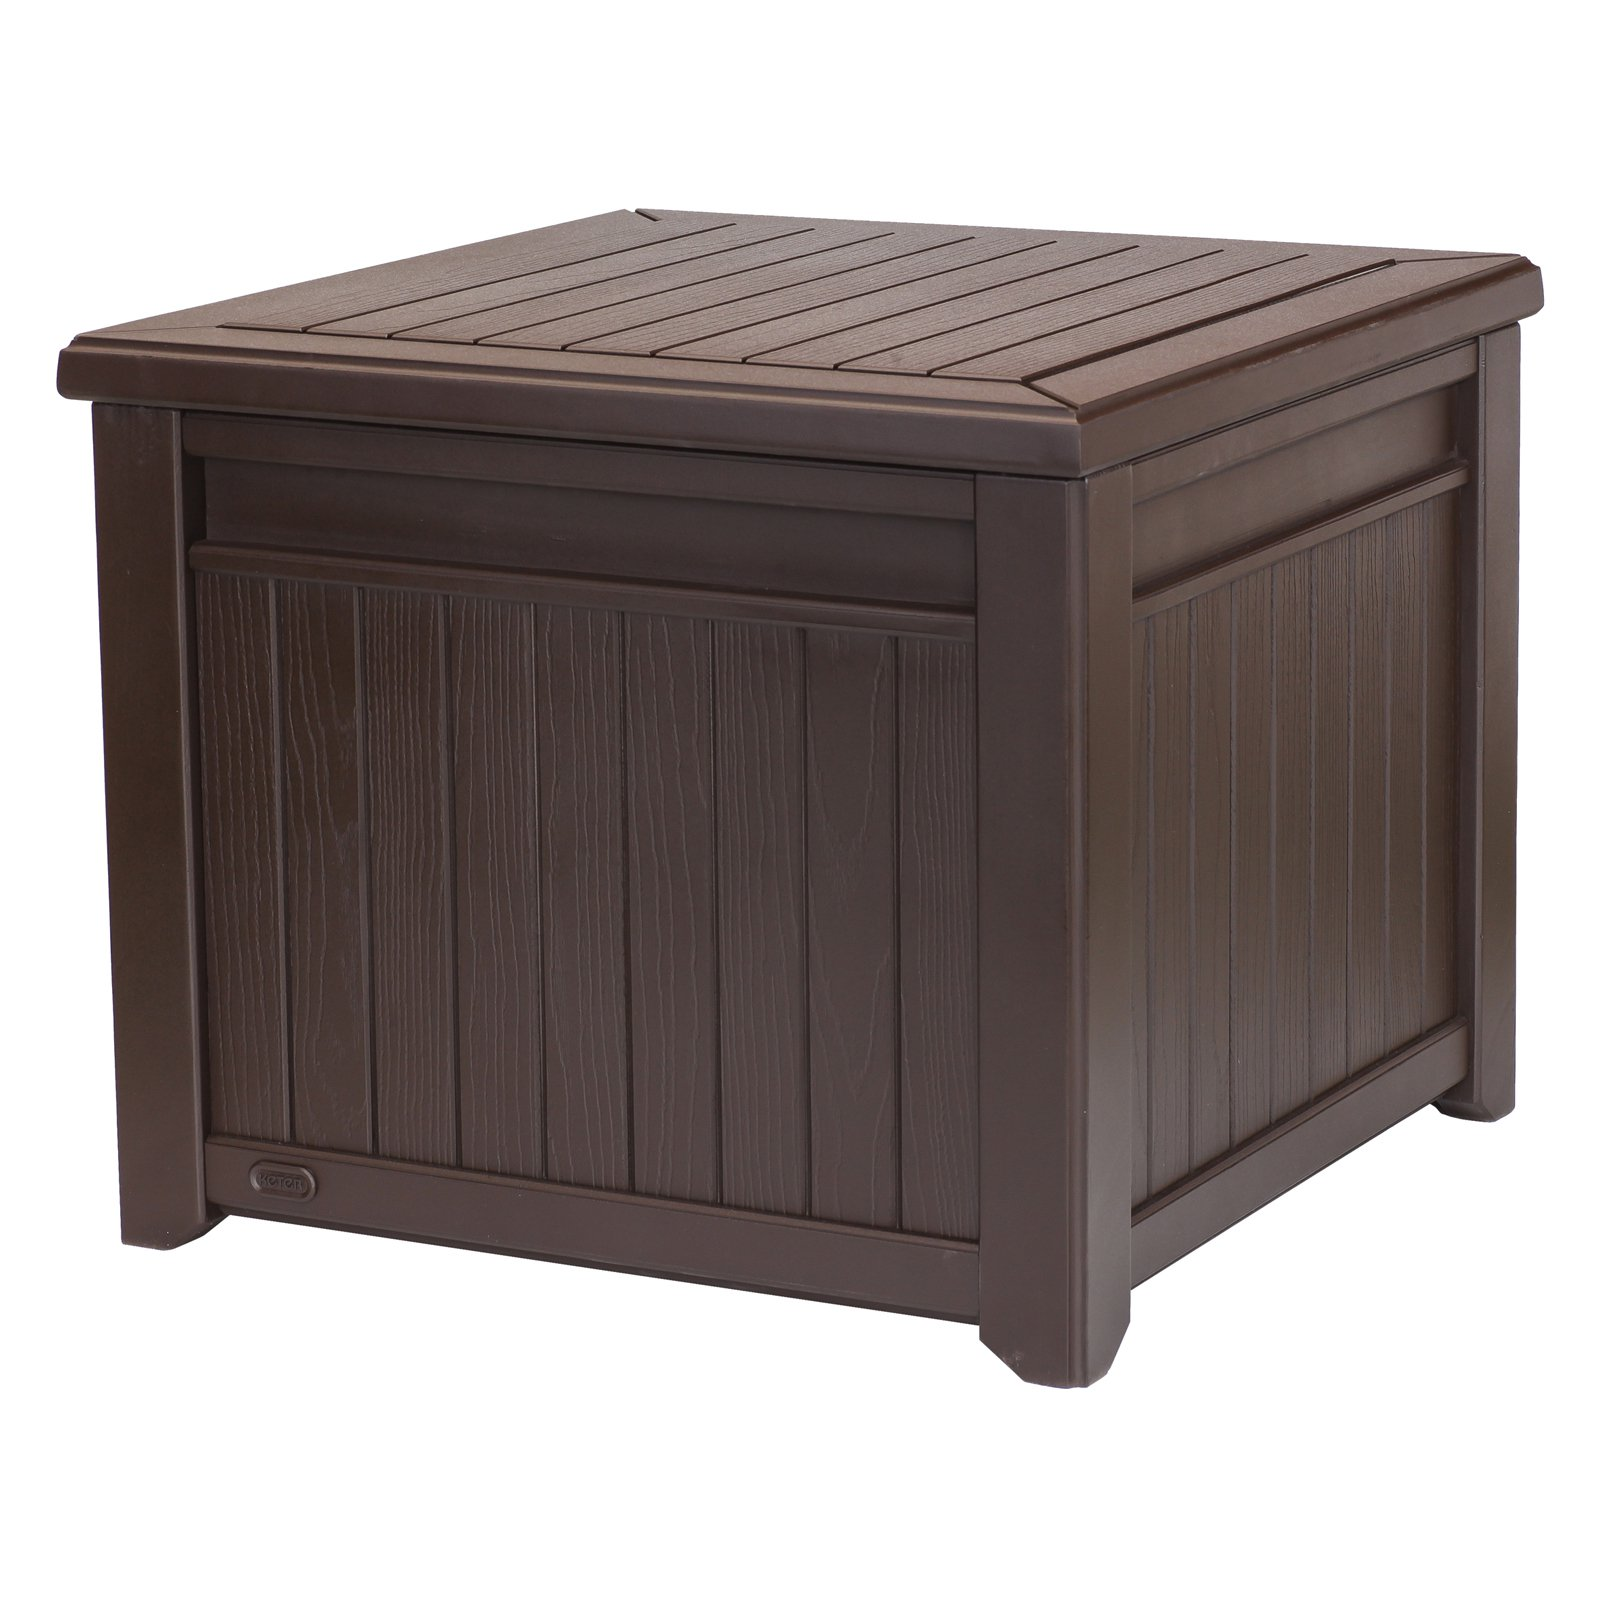 Outdoor Keter Resin 55 Gallon Deck Box Brown Panel